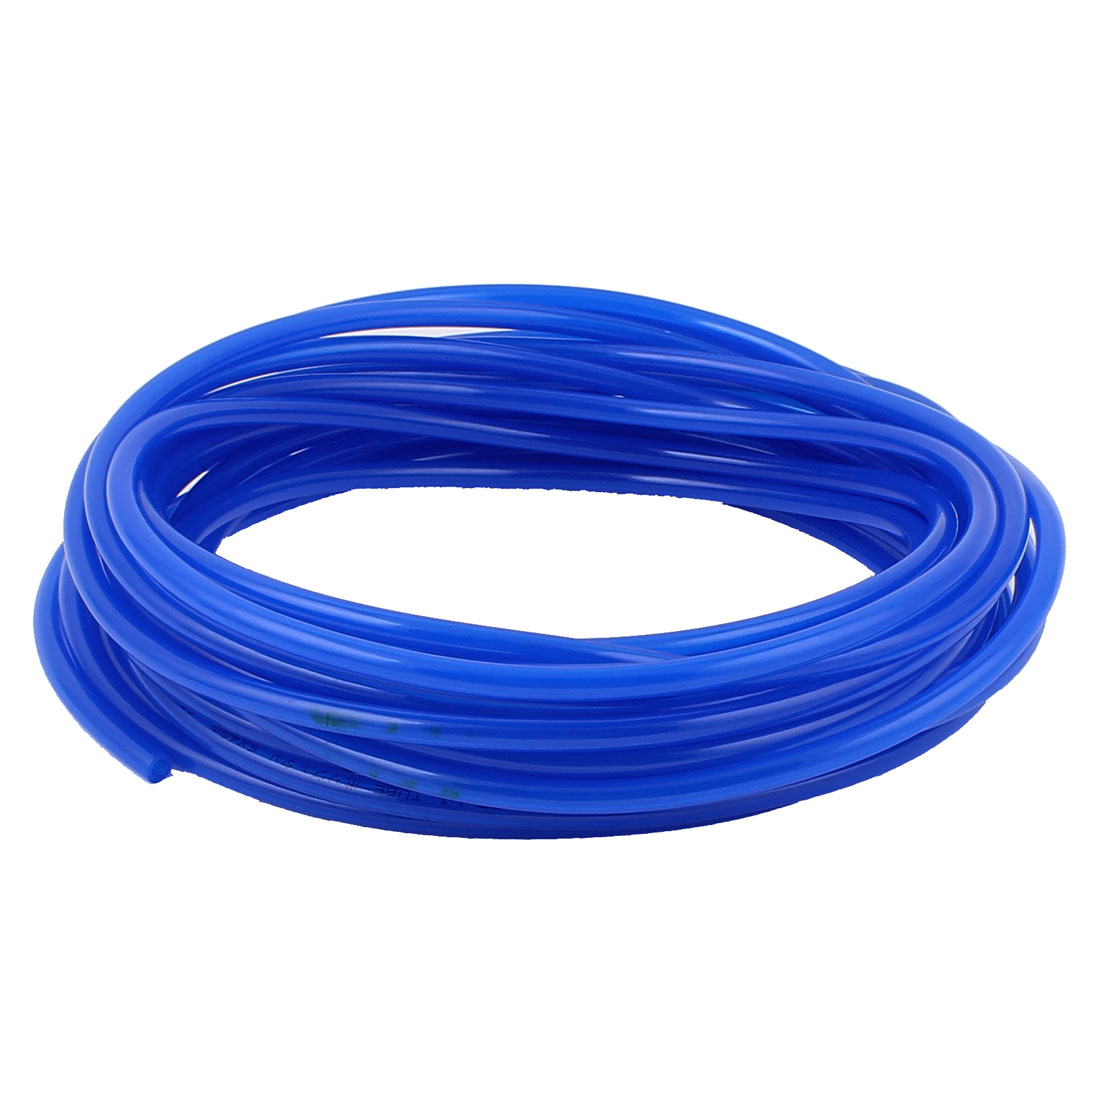 10M Long 6mm x 4mm Dia Pneumatic Polyurethane PU Air Tube Tubing Pipe Hose Blue